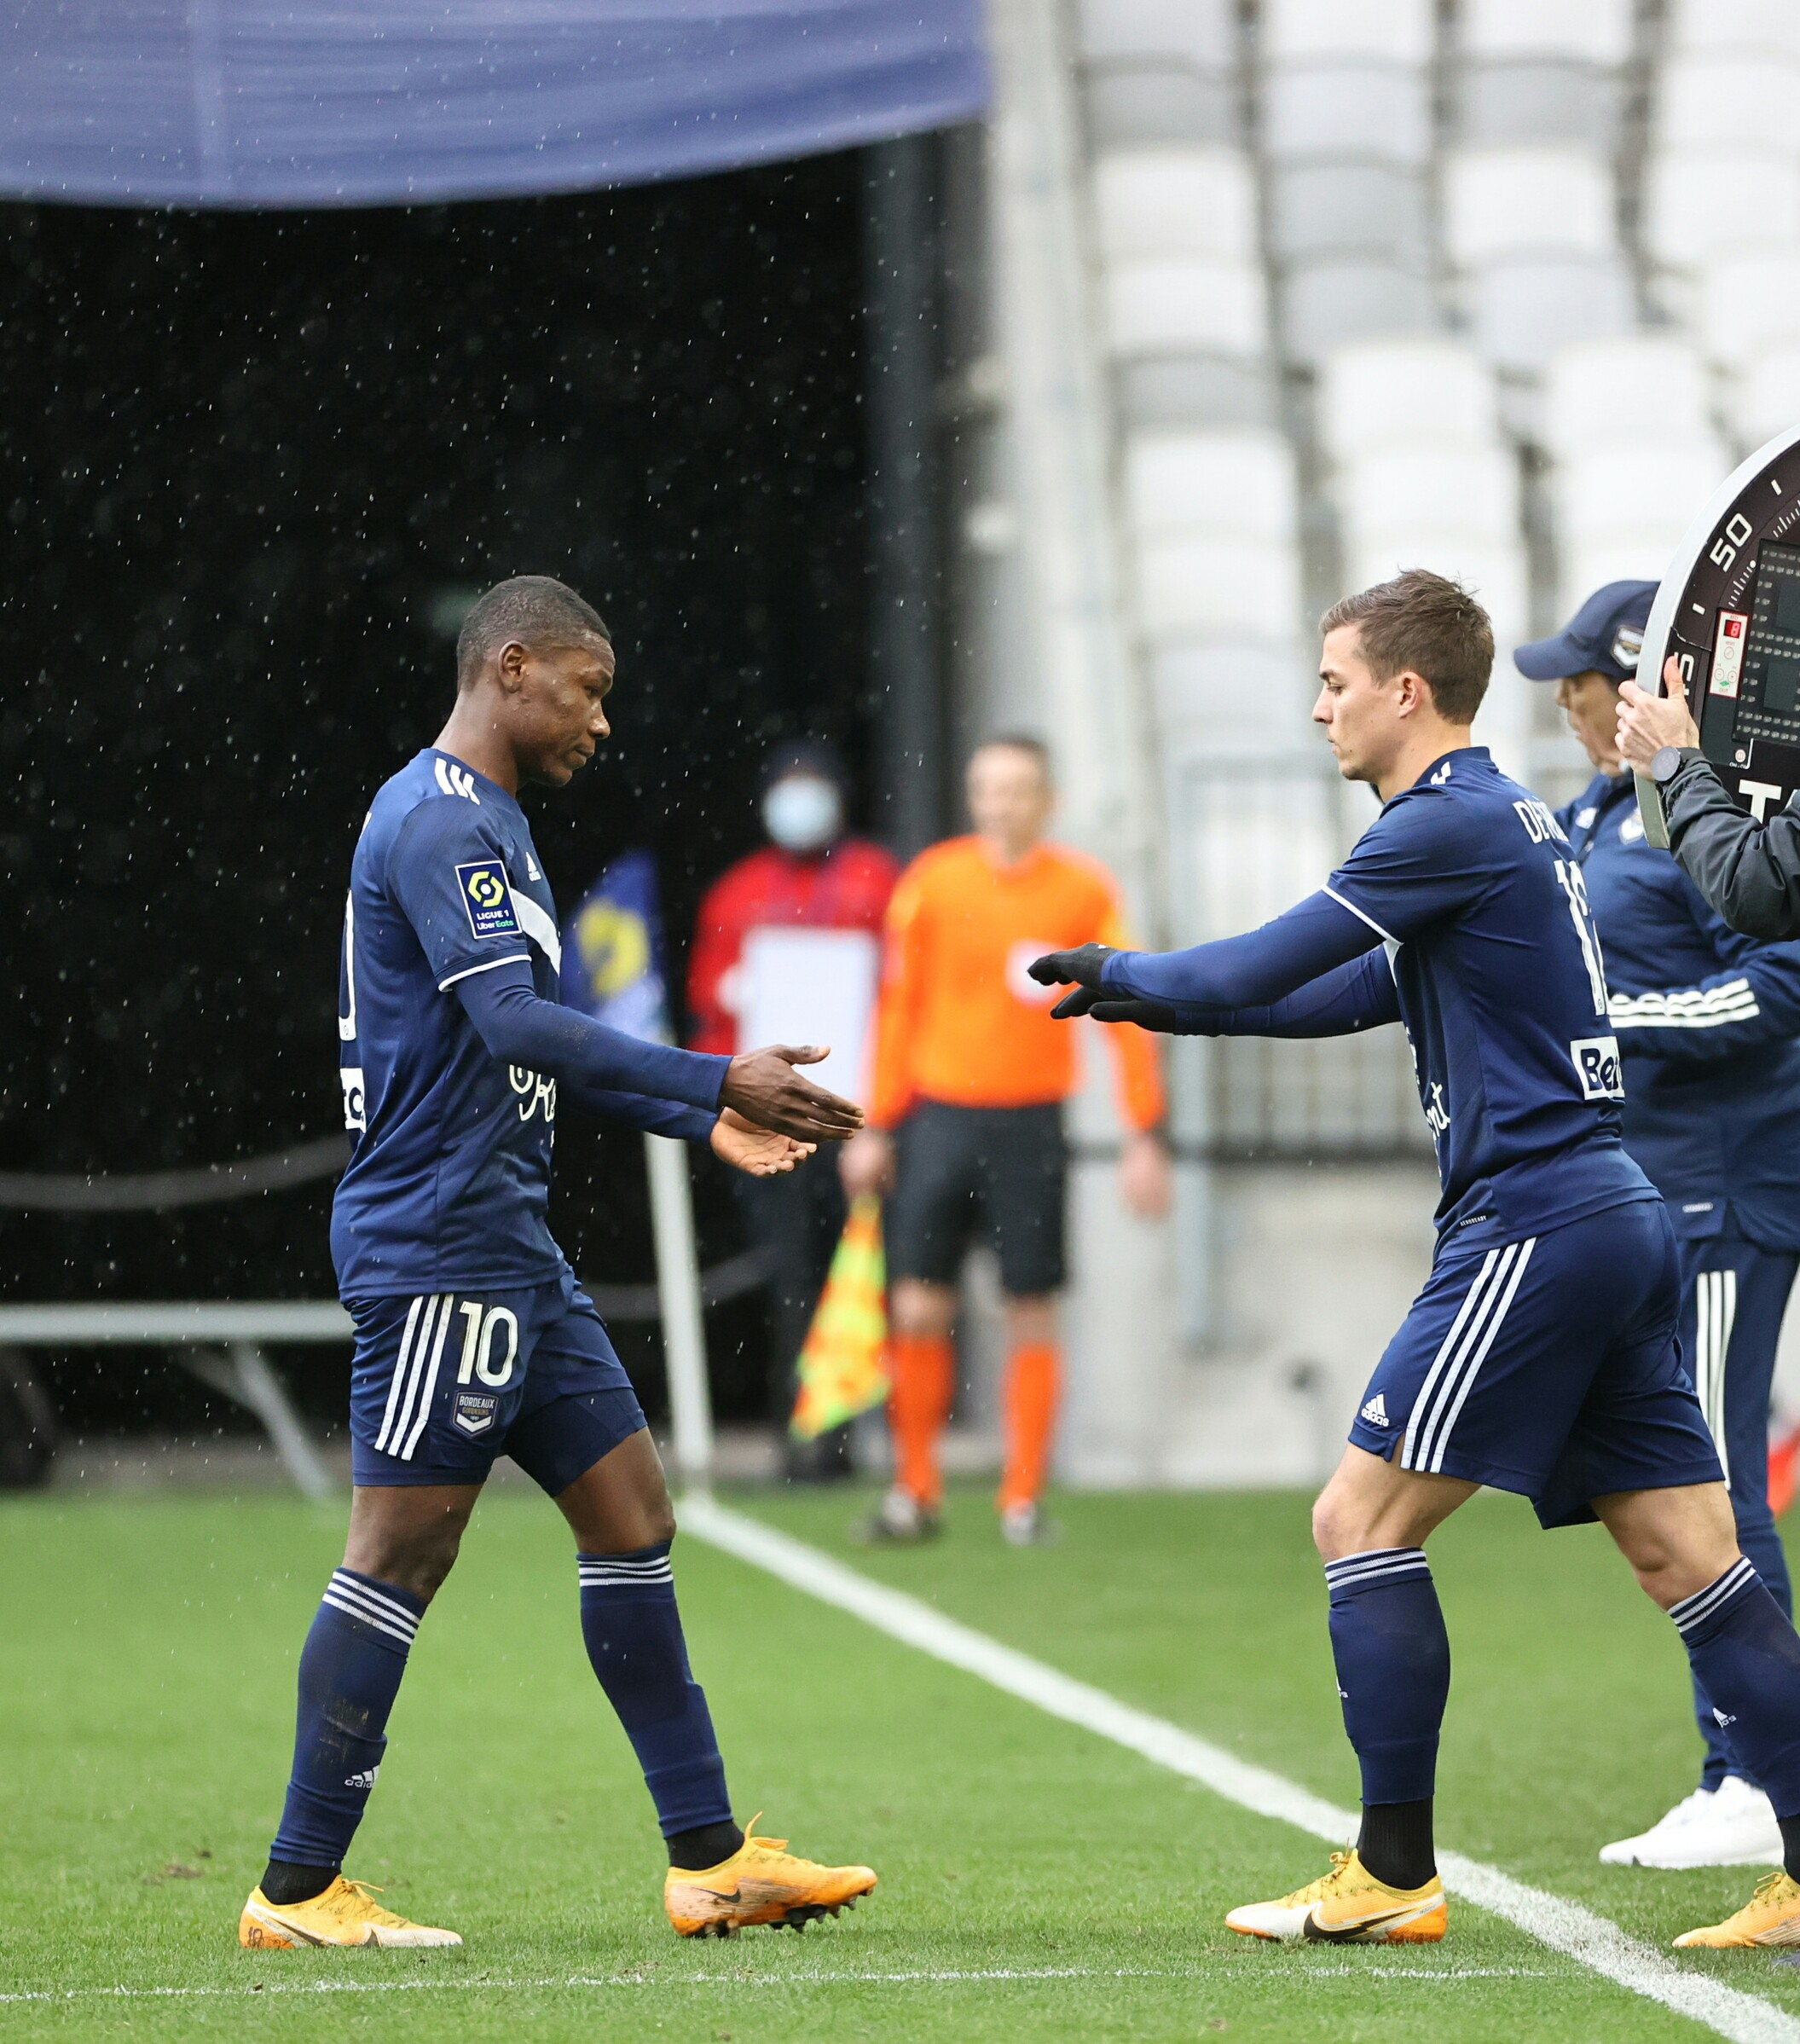 Ligue 1: Kalu Helps Bordeaux Overcome Angers, Extend Winning Run